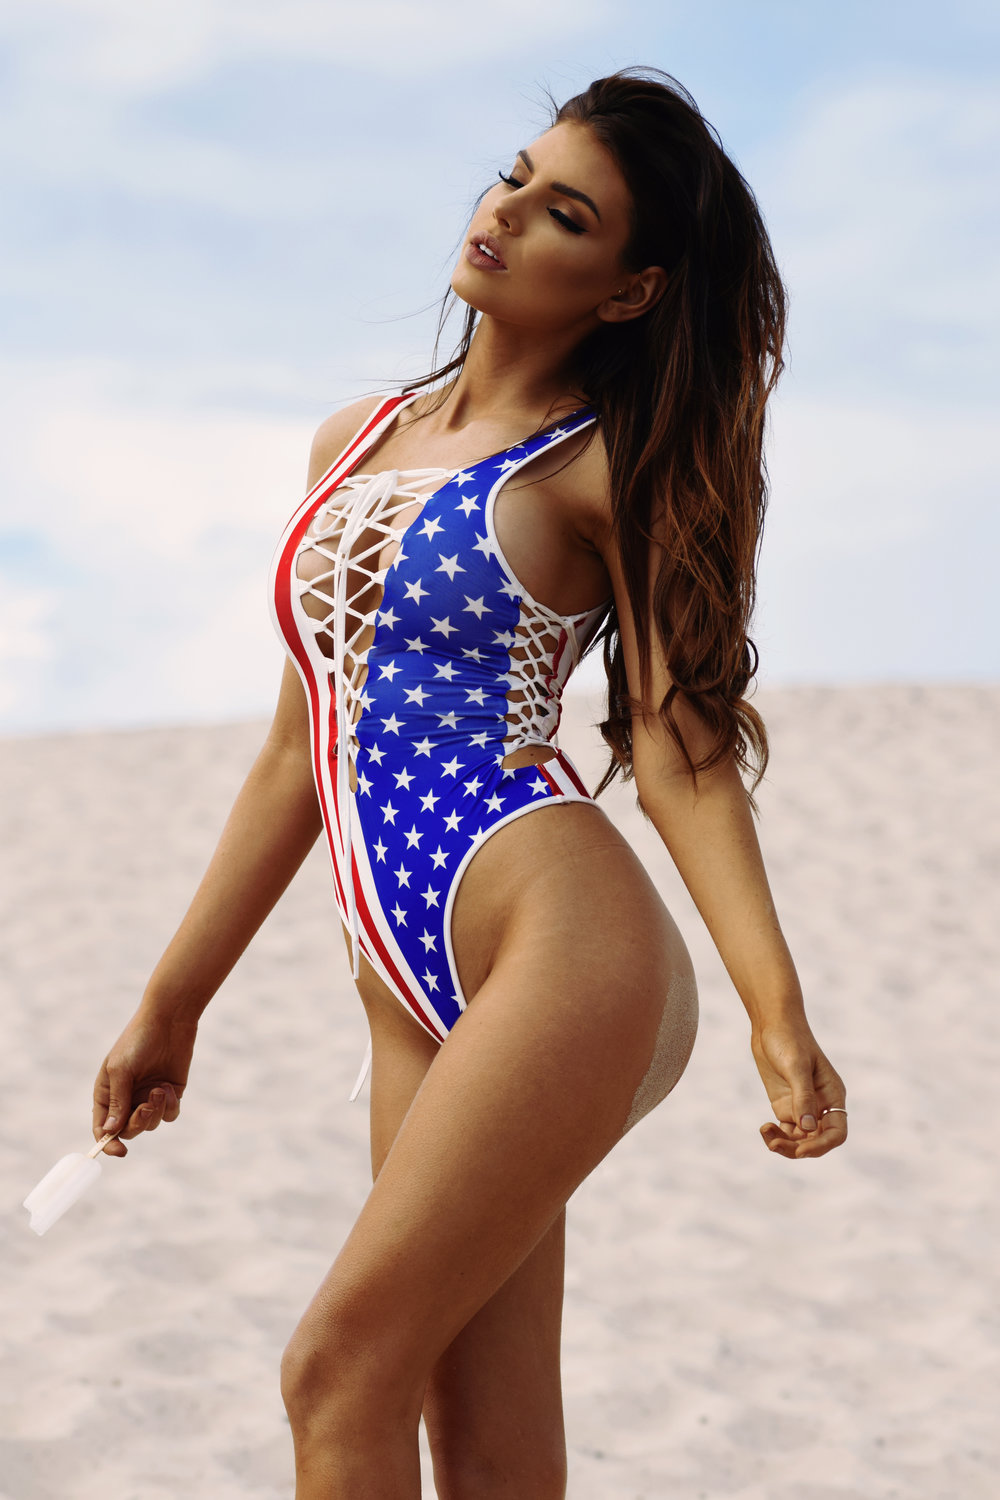 Nicole Thorne Hot USA Flag Swimsuit Pics - Nicole Thorne Hot USA Flag Swimsuit Pics